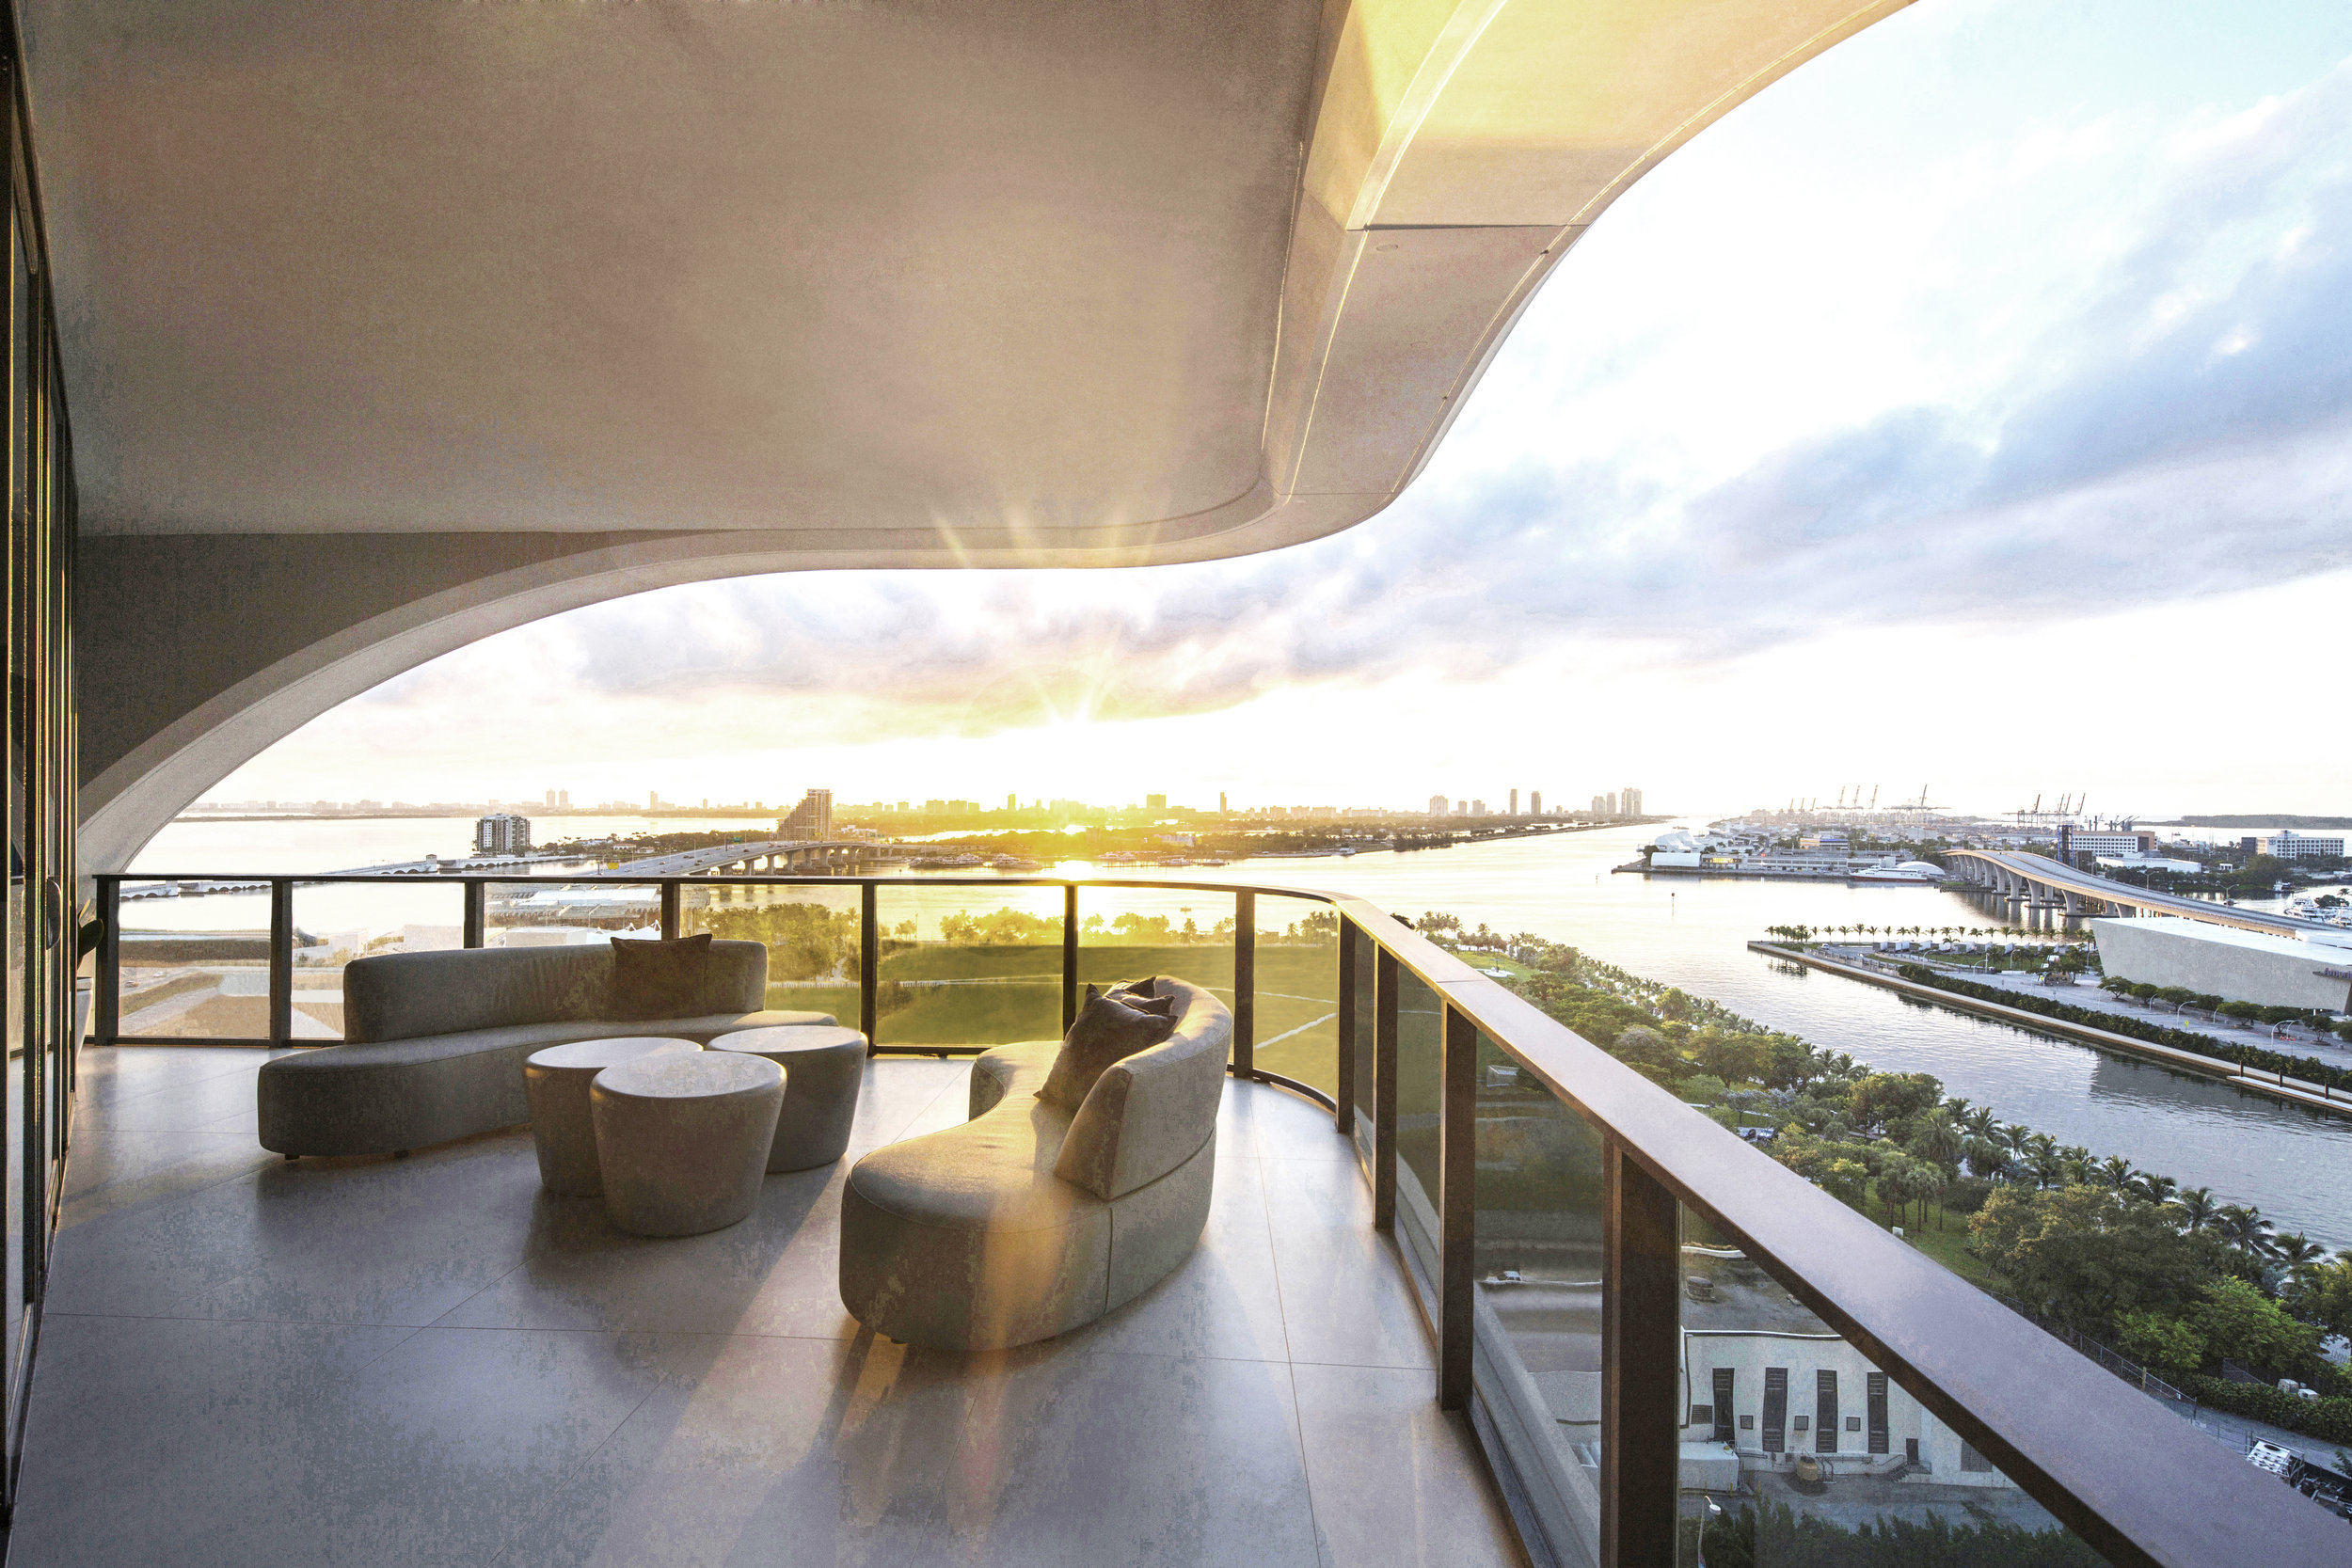 Zaha Hadid's One Thousand Museum Reveals First Look At Uber-Luxe Model Residence Designed By Artefacto